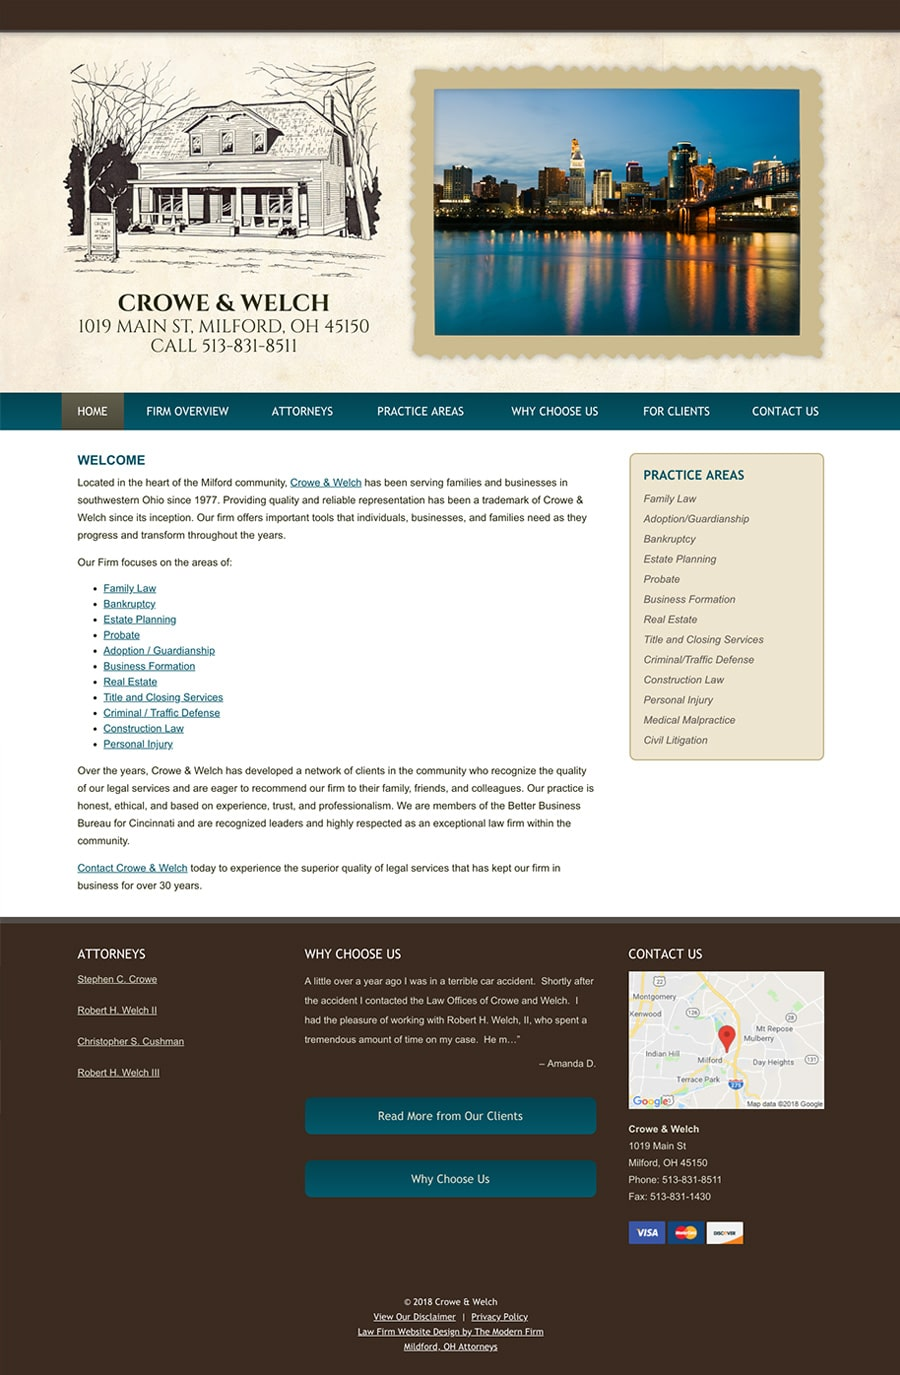 Oh Law Firm >> Milford Oh Law Firm Web Design By The Modern Firm